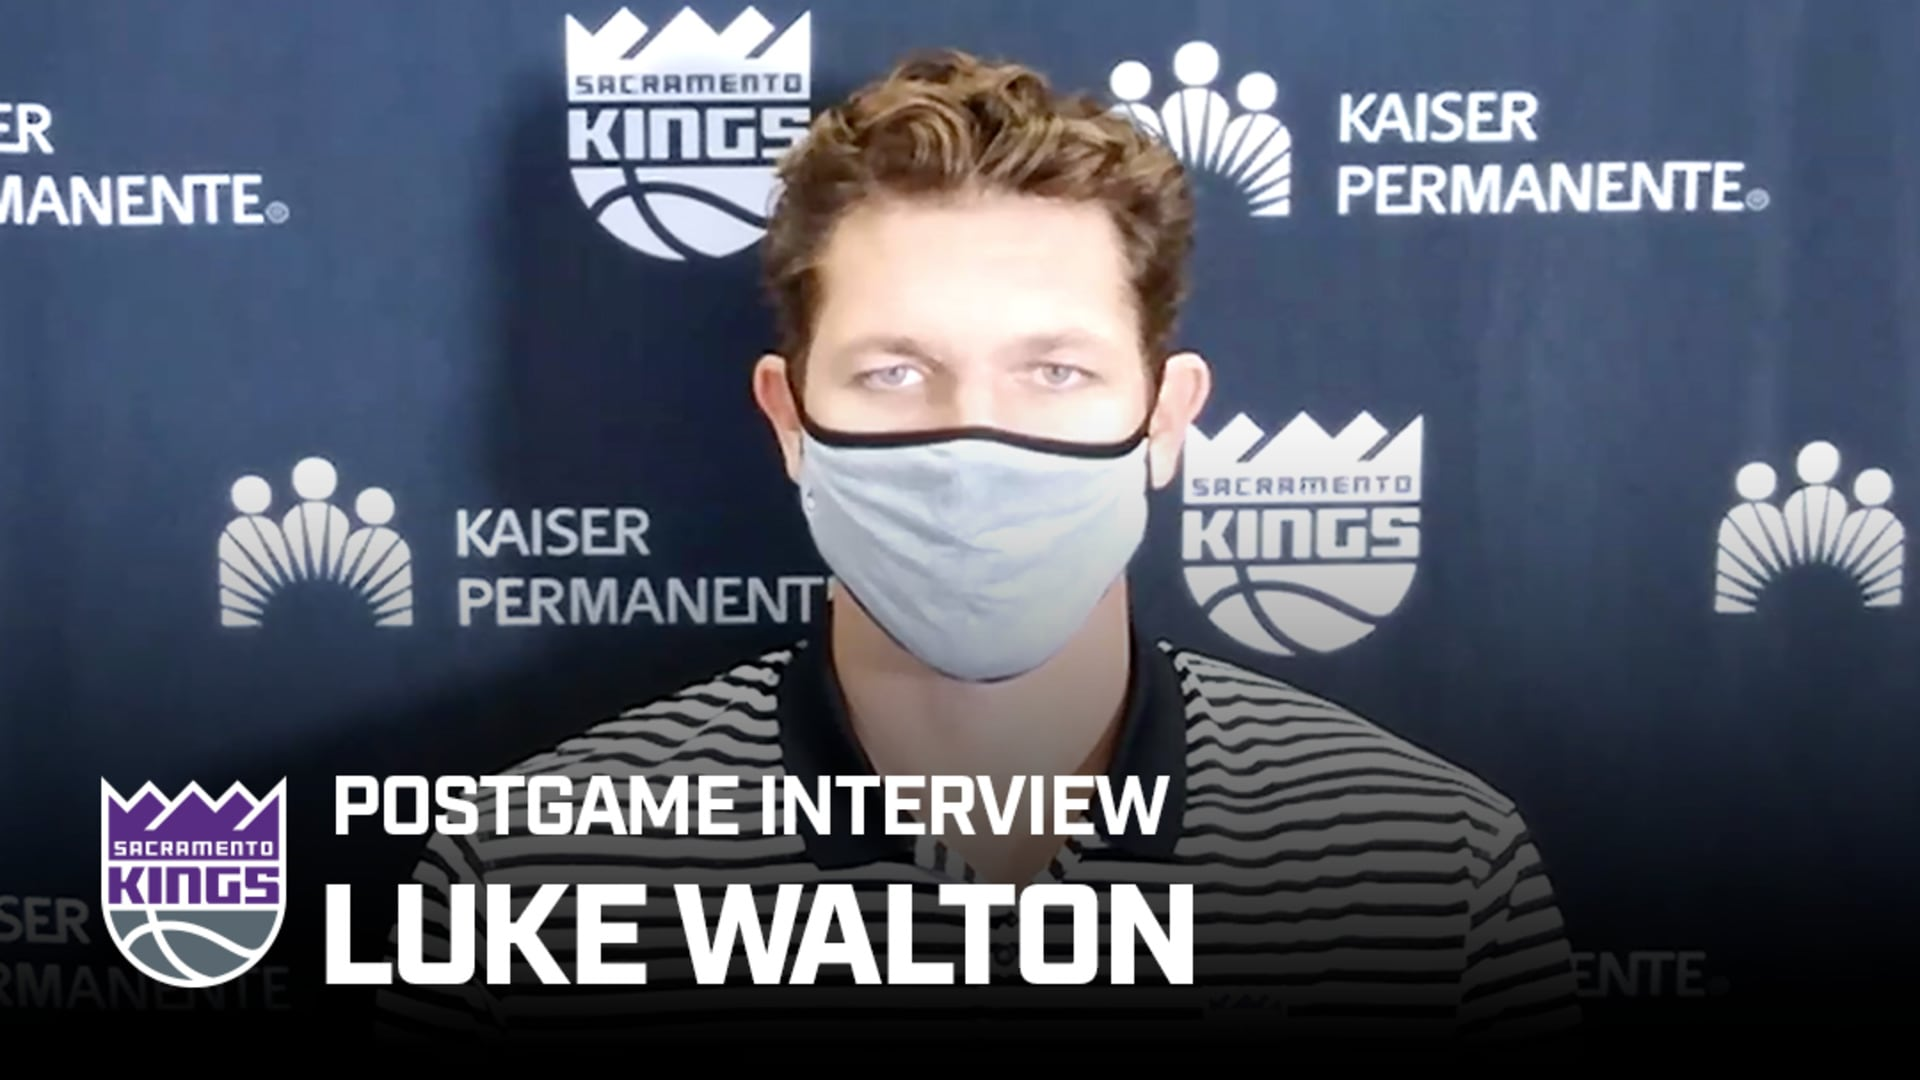 Luke Remains Confident in the Kings | Postgame Interview 8.2.20